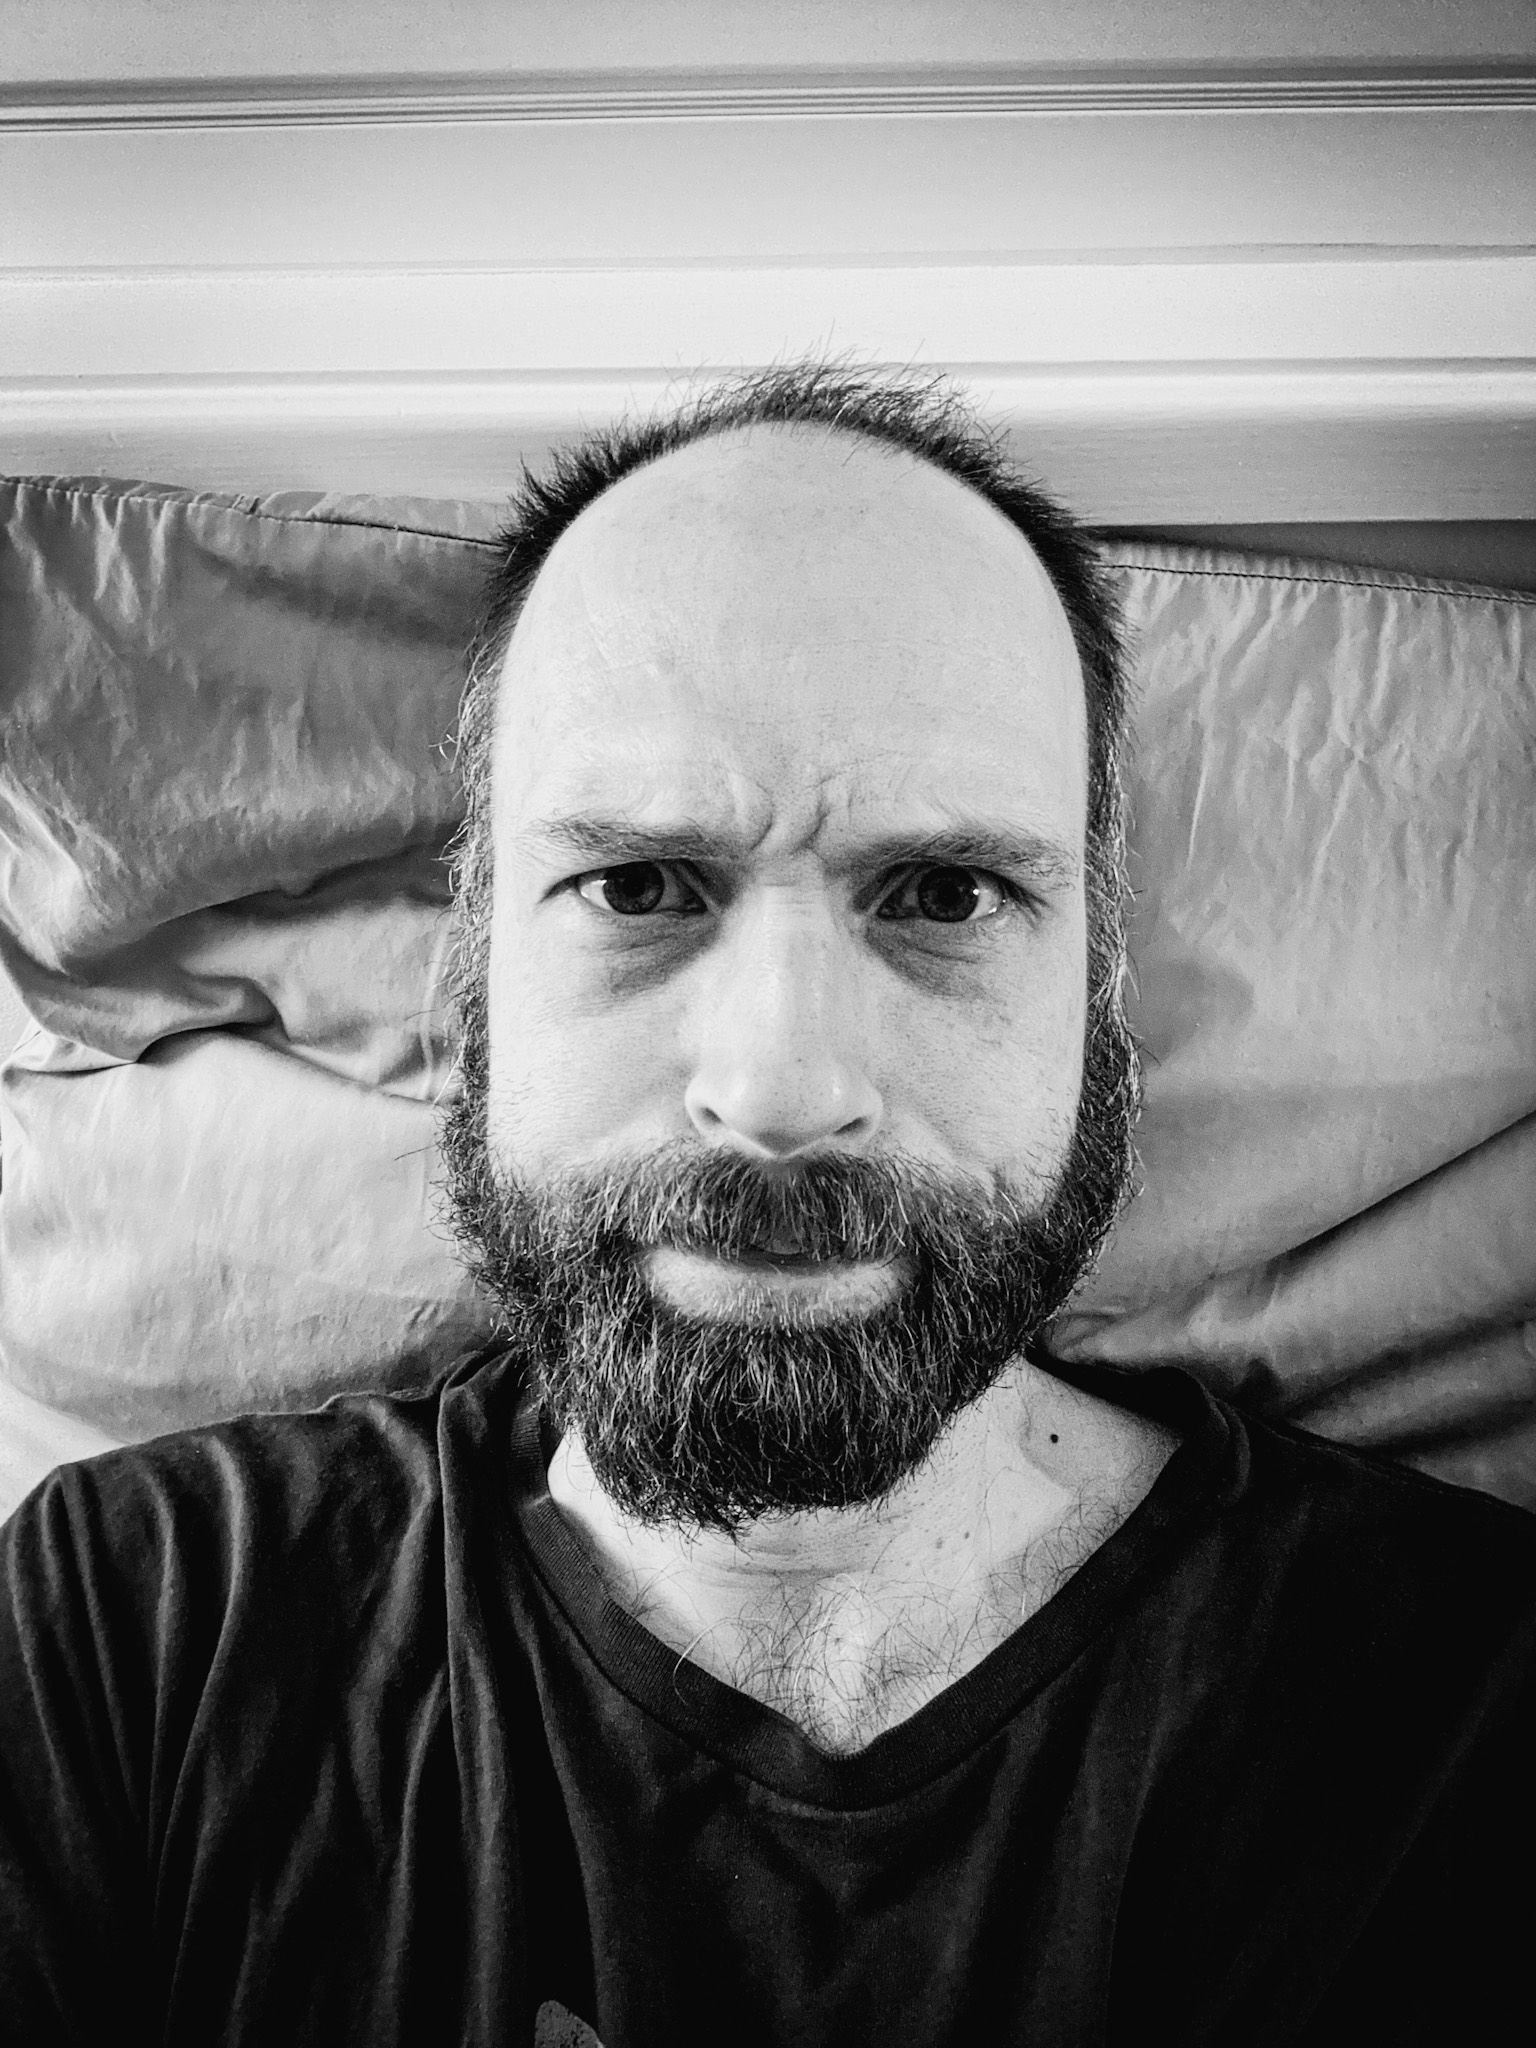 """A black and white selfie of me, a white man with a scruffy beard and, uh, let's say """"large forehead"""" rather than """"receding hairline"""", with my eyebrows furrowed looking intently at the camera."""